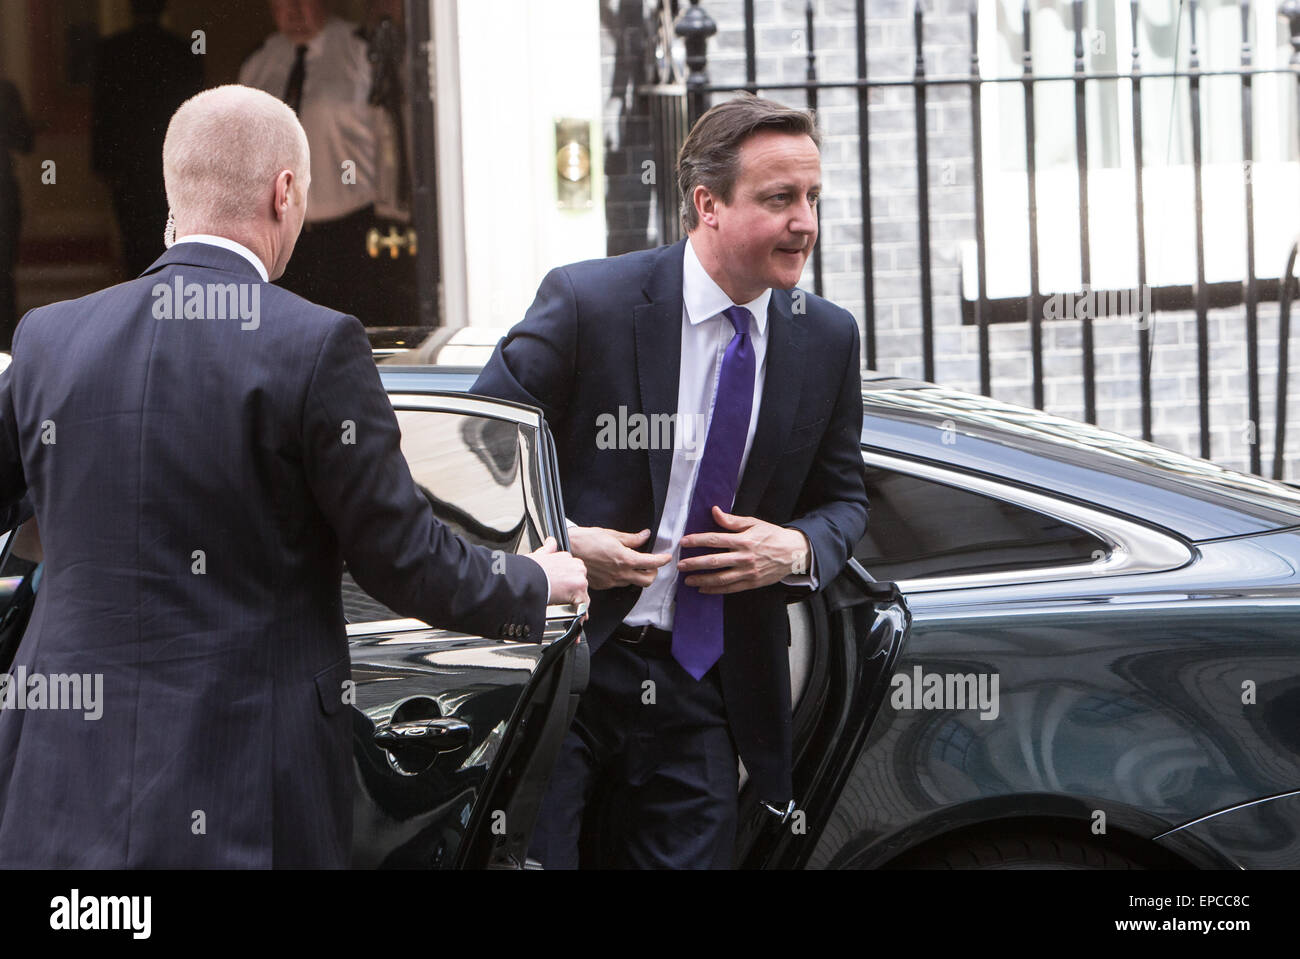 Prime Minister,David Cameron, arrives at number 10 Downing street Stock Photo